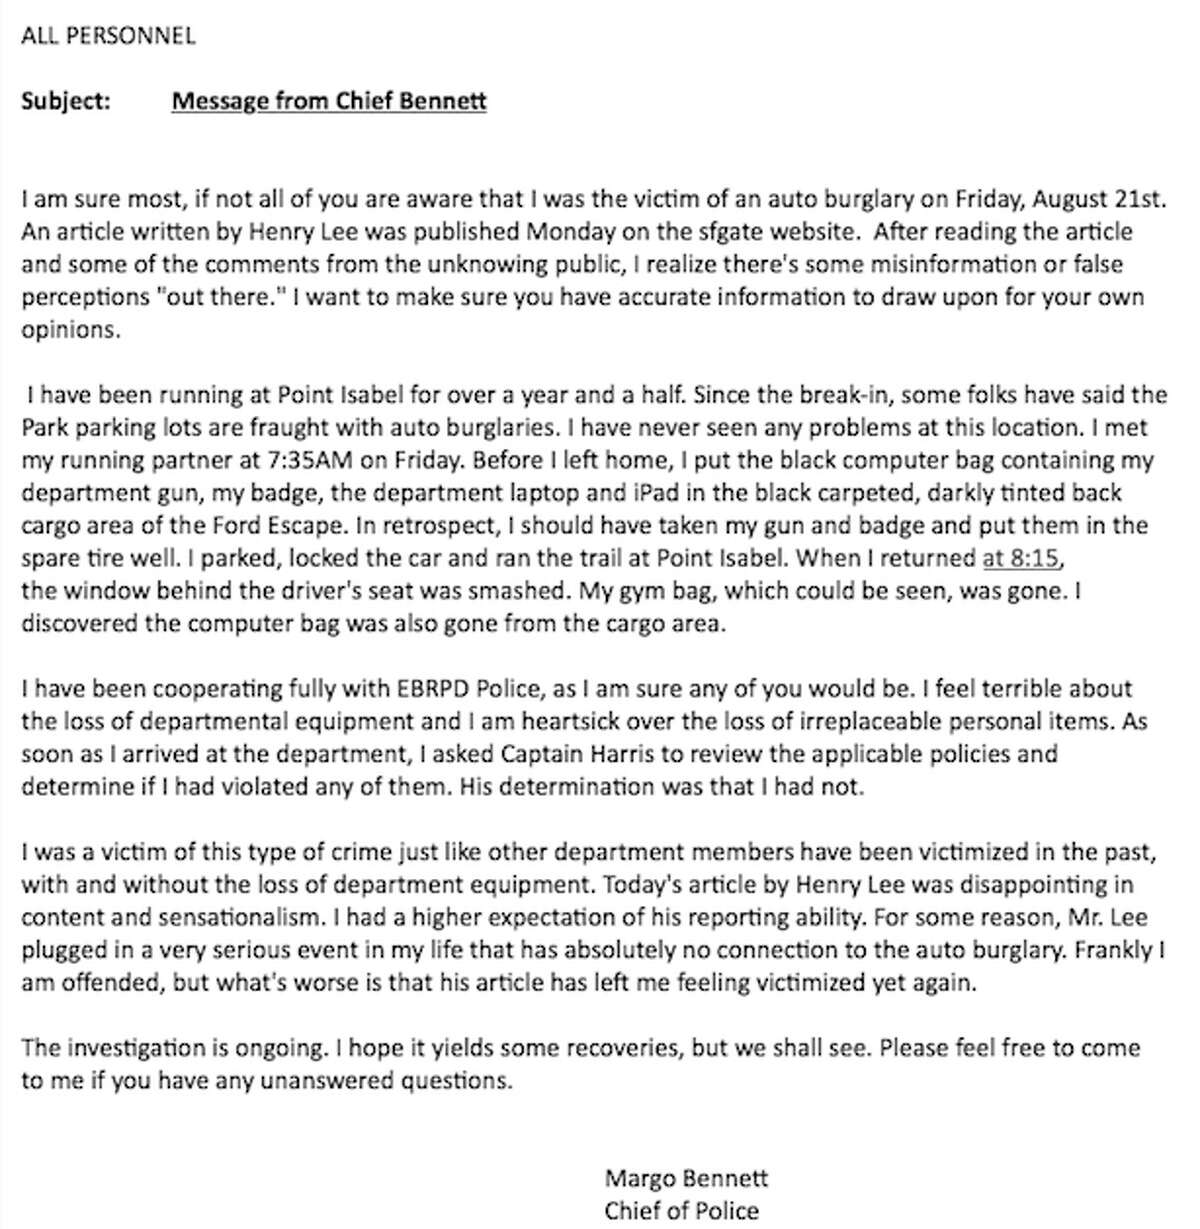 UC Berkeley police chief Margo Bennett sent this e-mail to all UC Berkeley Police Department personnel responding to an auto burglary on Friday, Aug. 21, 2015, at Point Isabel Regional Shoreline in Richmond. Her department-issued gun, laptop, badge and and iPad were among the items stolen from her unmarked Ford Escape.